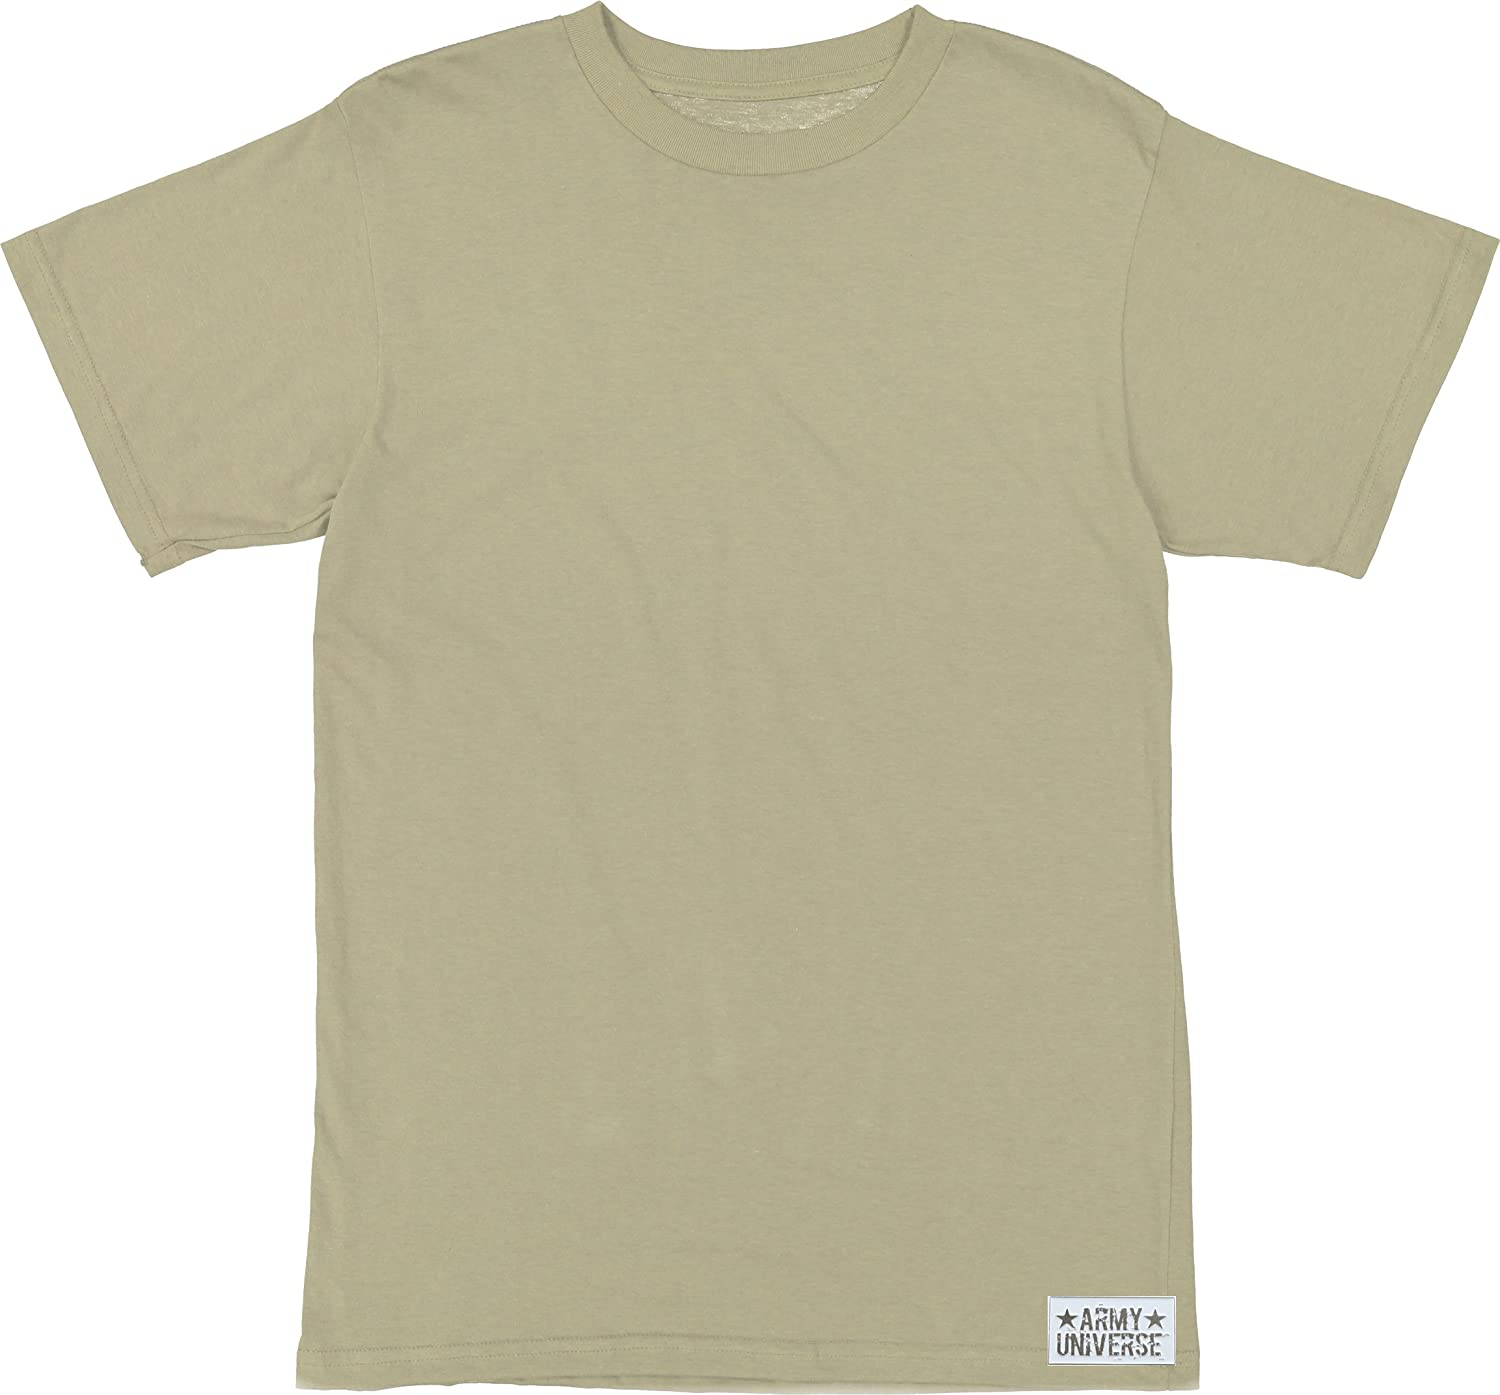 Amazon.com  Army Universe Desert Tan Sand Military T-Shirt 7afaa7cfb57